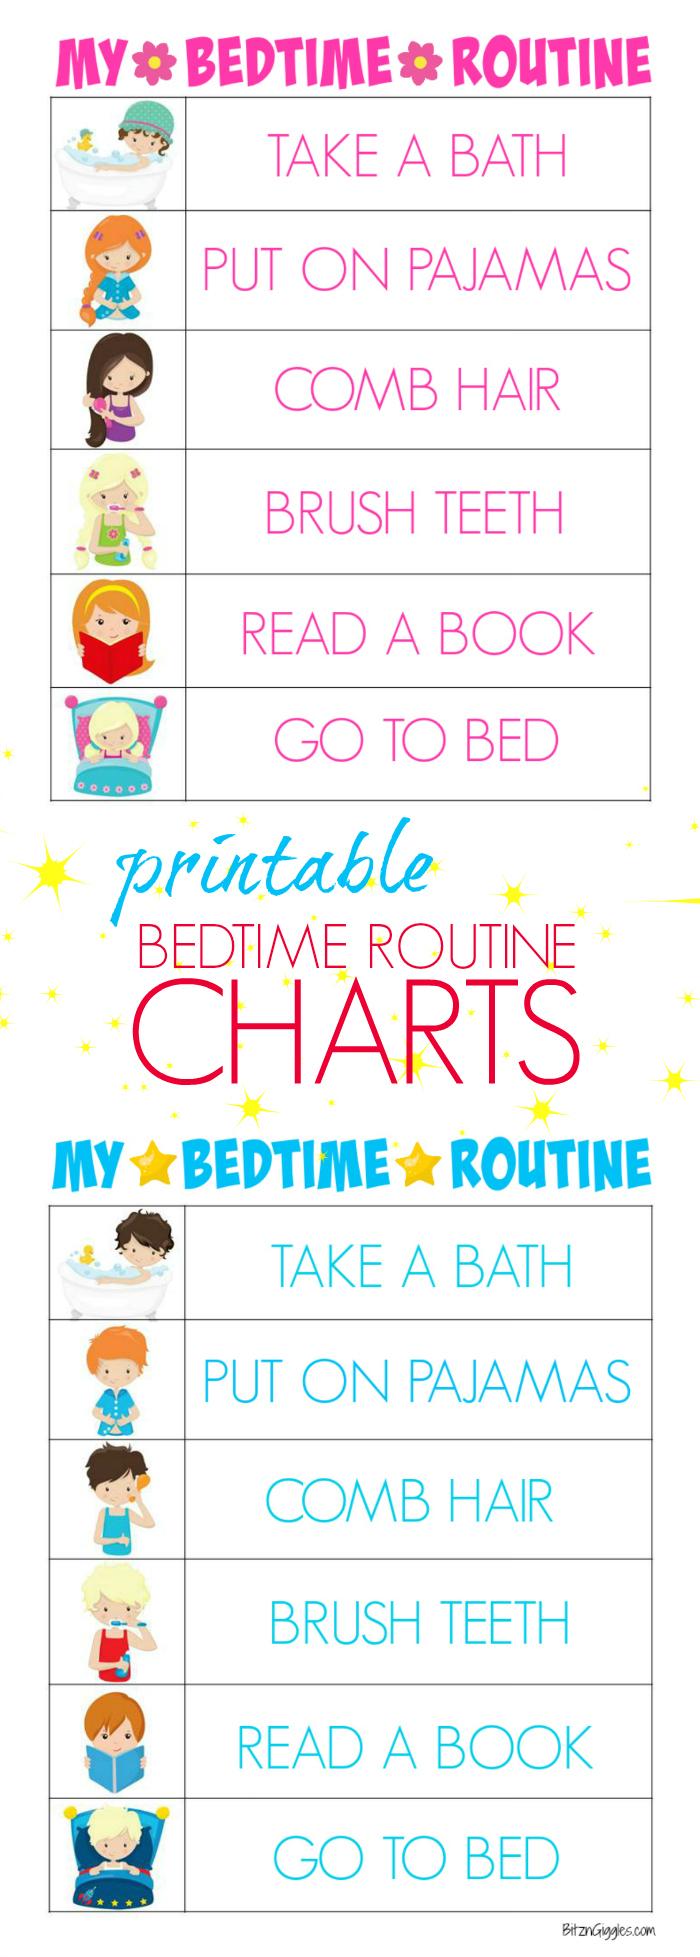 photo relating to Children's Routine Charts Free Printable referred to as Printable Bedtime Agenda Charts - Bitz Giggles